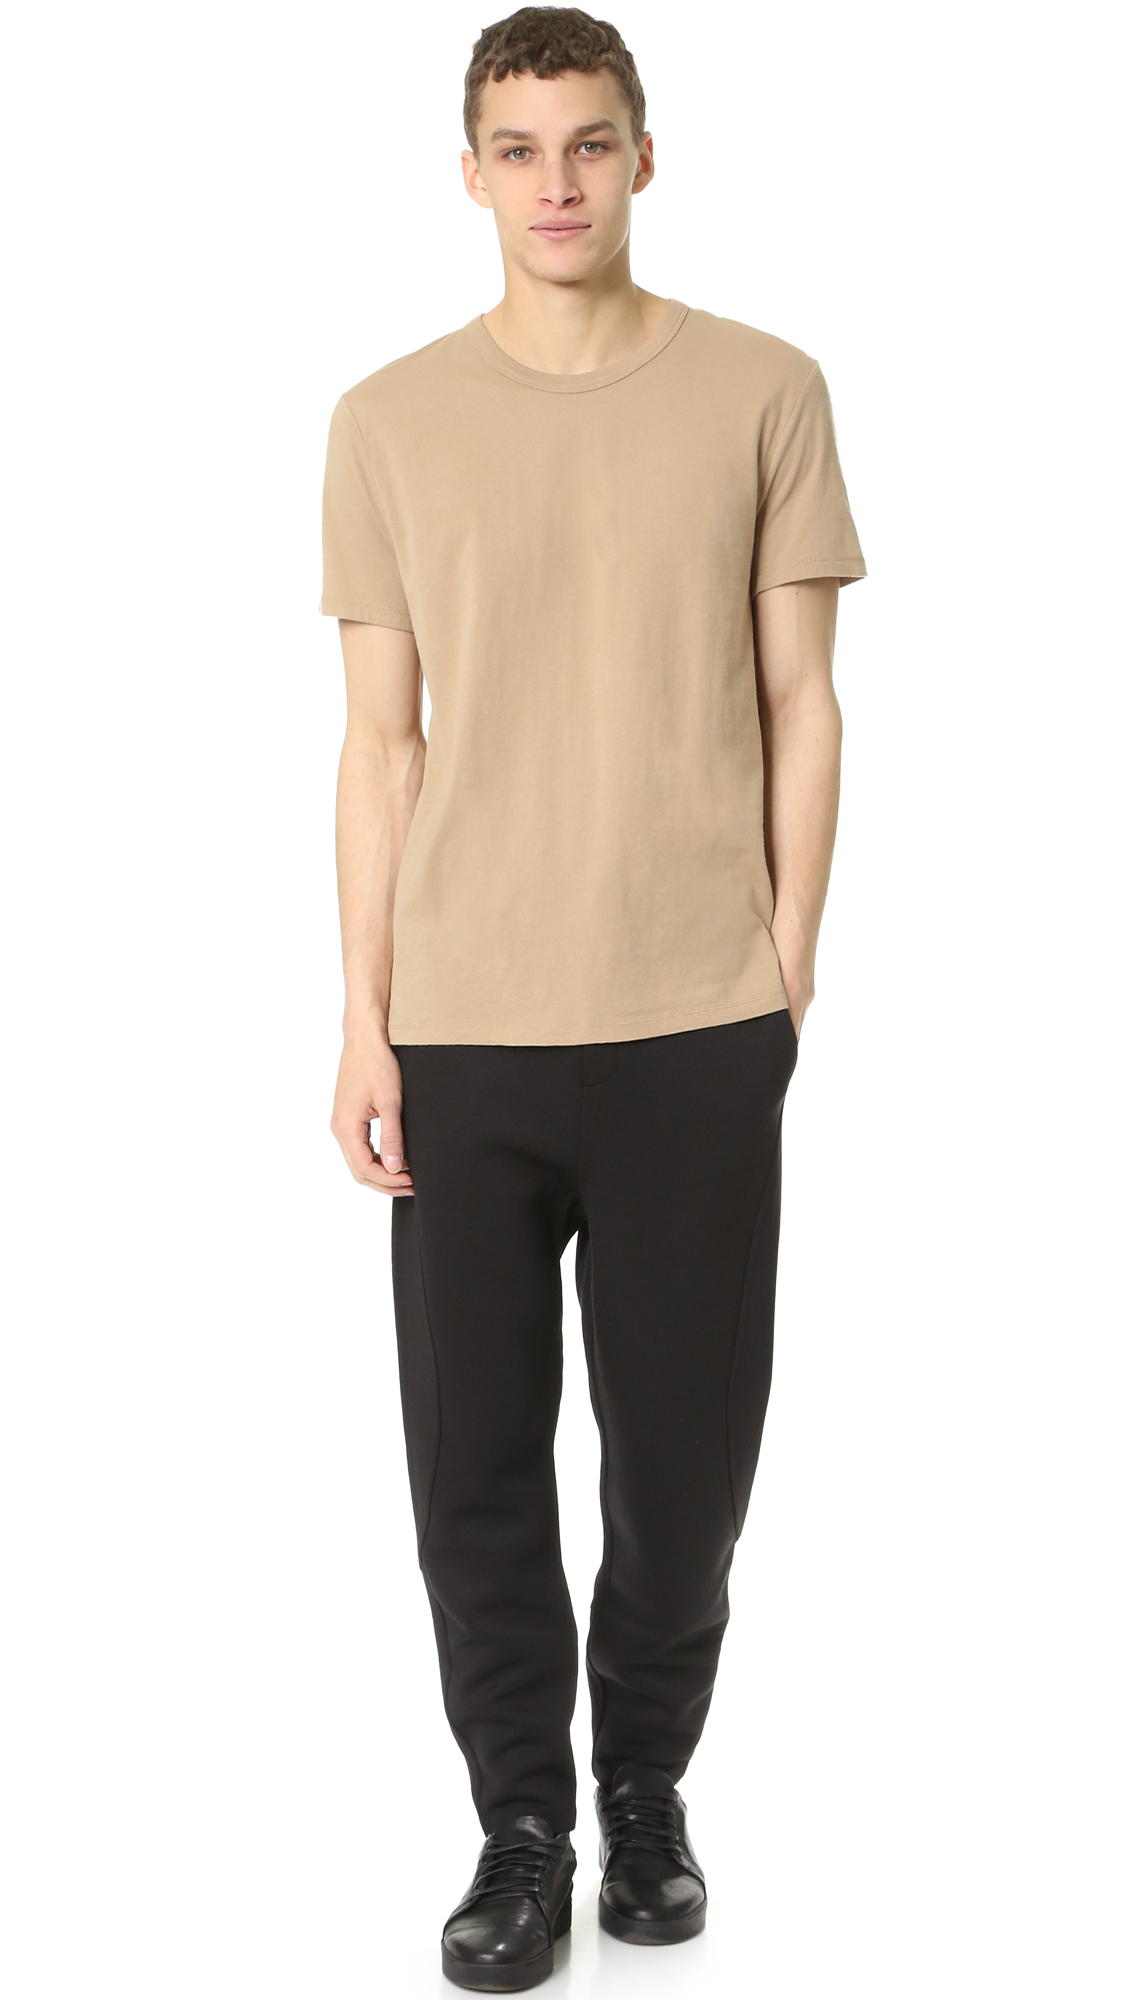 lyst t by alexander wang classic pima tee in natural for men. Black Bedroom Furniture Sets. Home Design Ideas